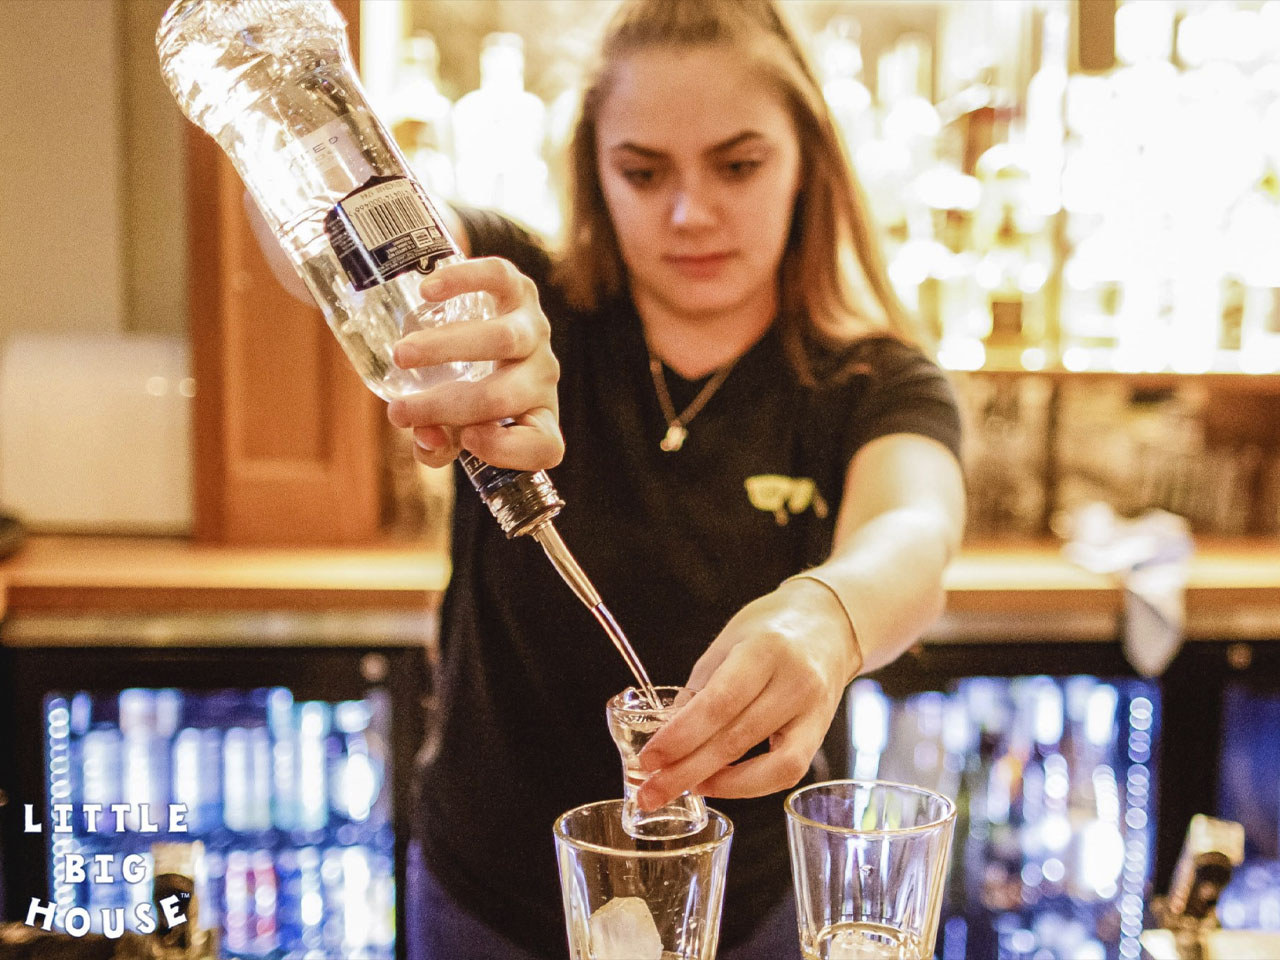 Bar girl pouring spirits into small glass at bar